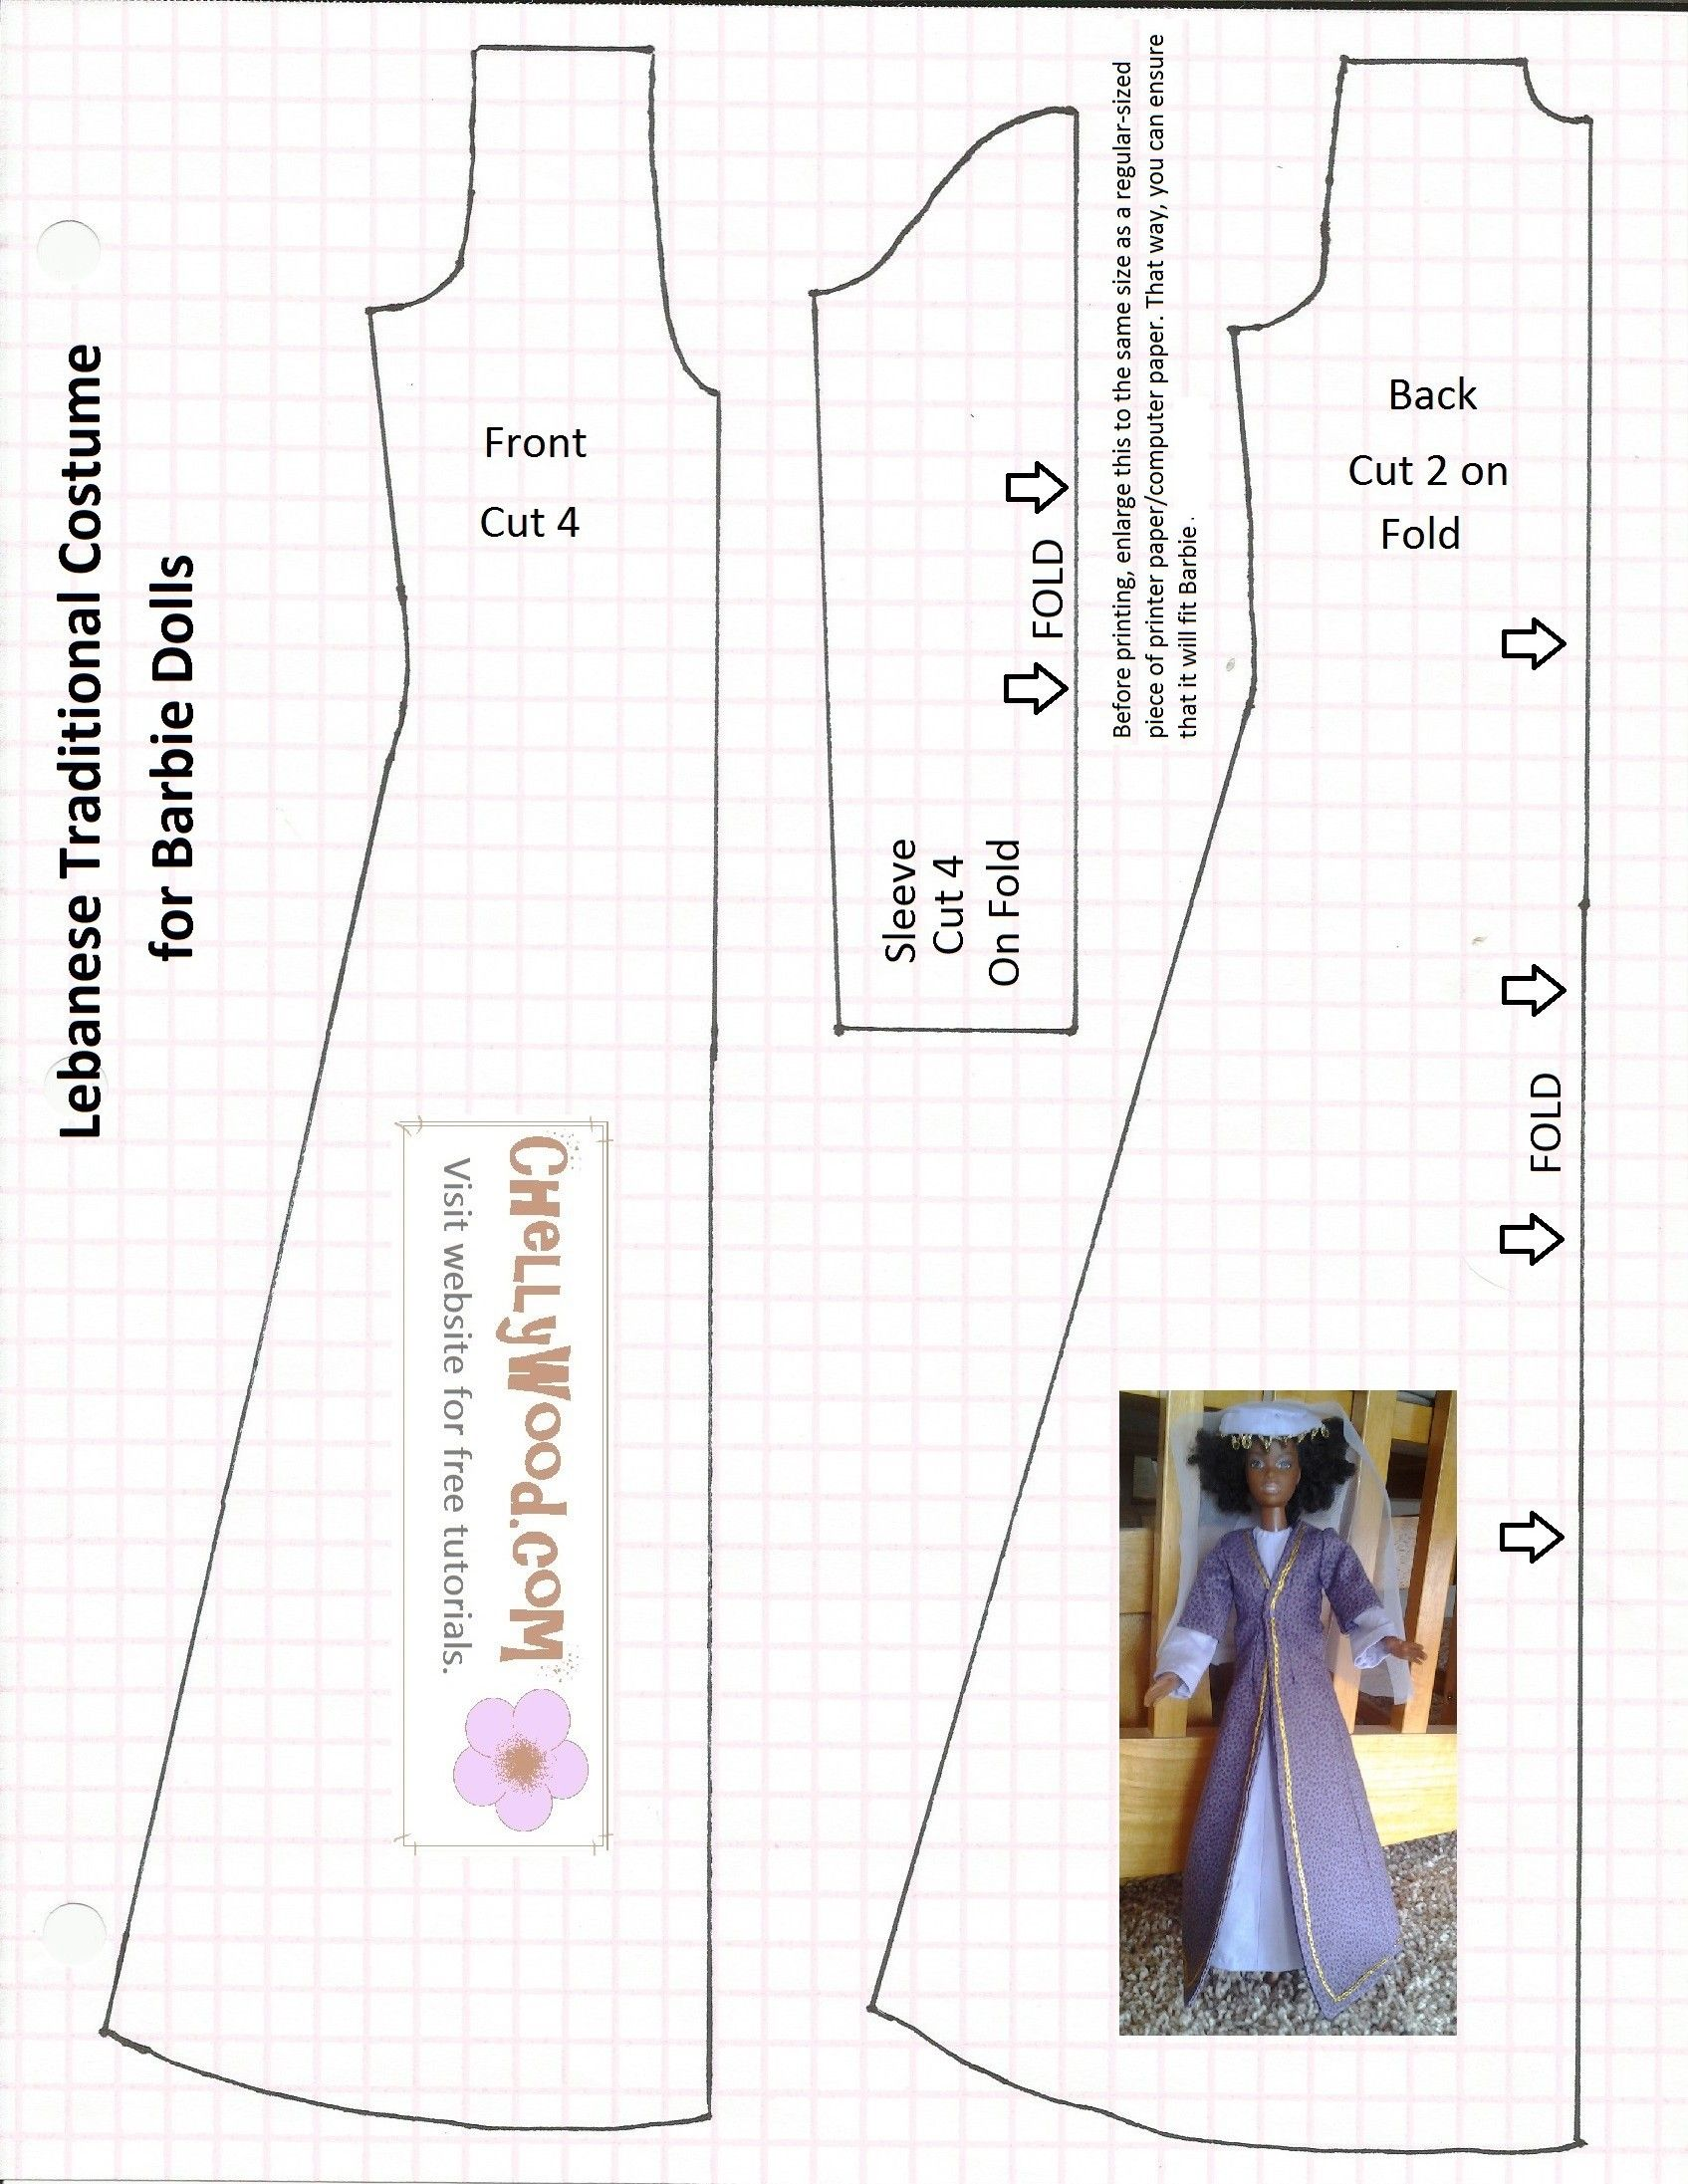 Free sewing patterns for fashion dolls - Image Of Sewing Pattern For Making A Lebanese Traditional Dress That Fits Barbie Sized Fashion